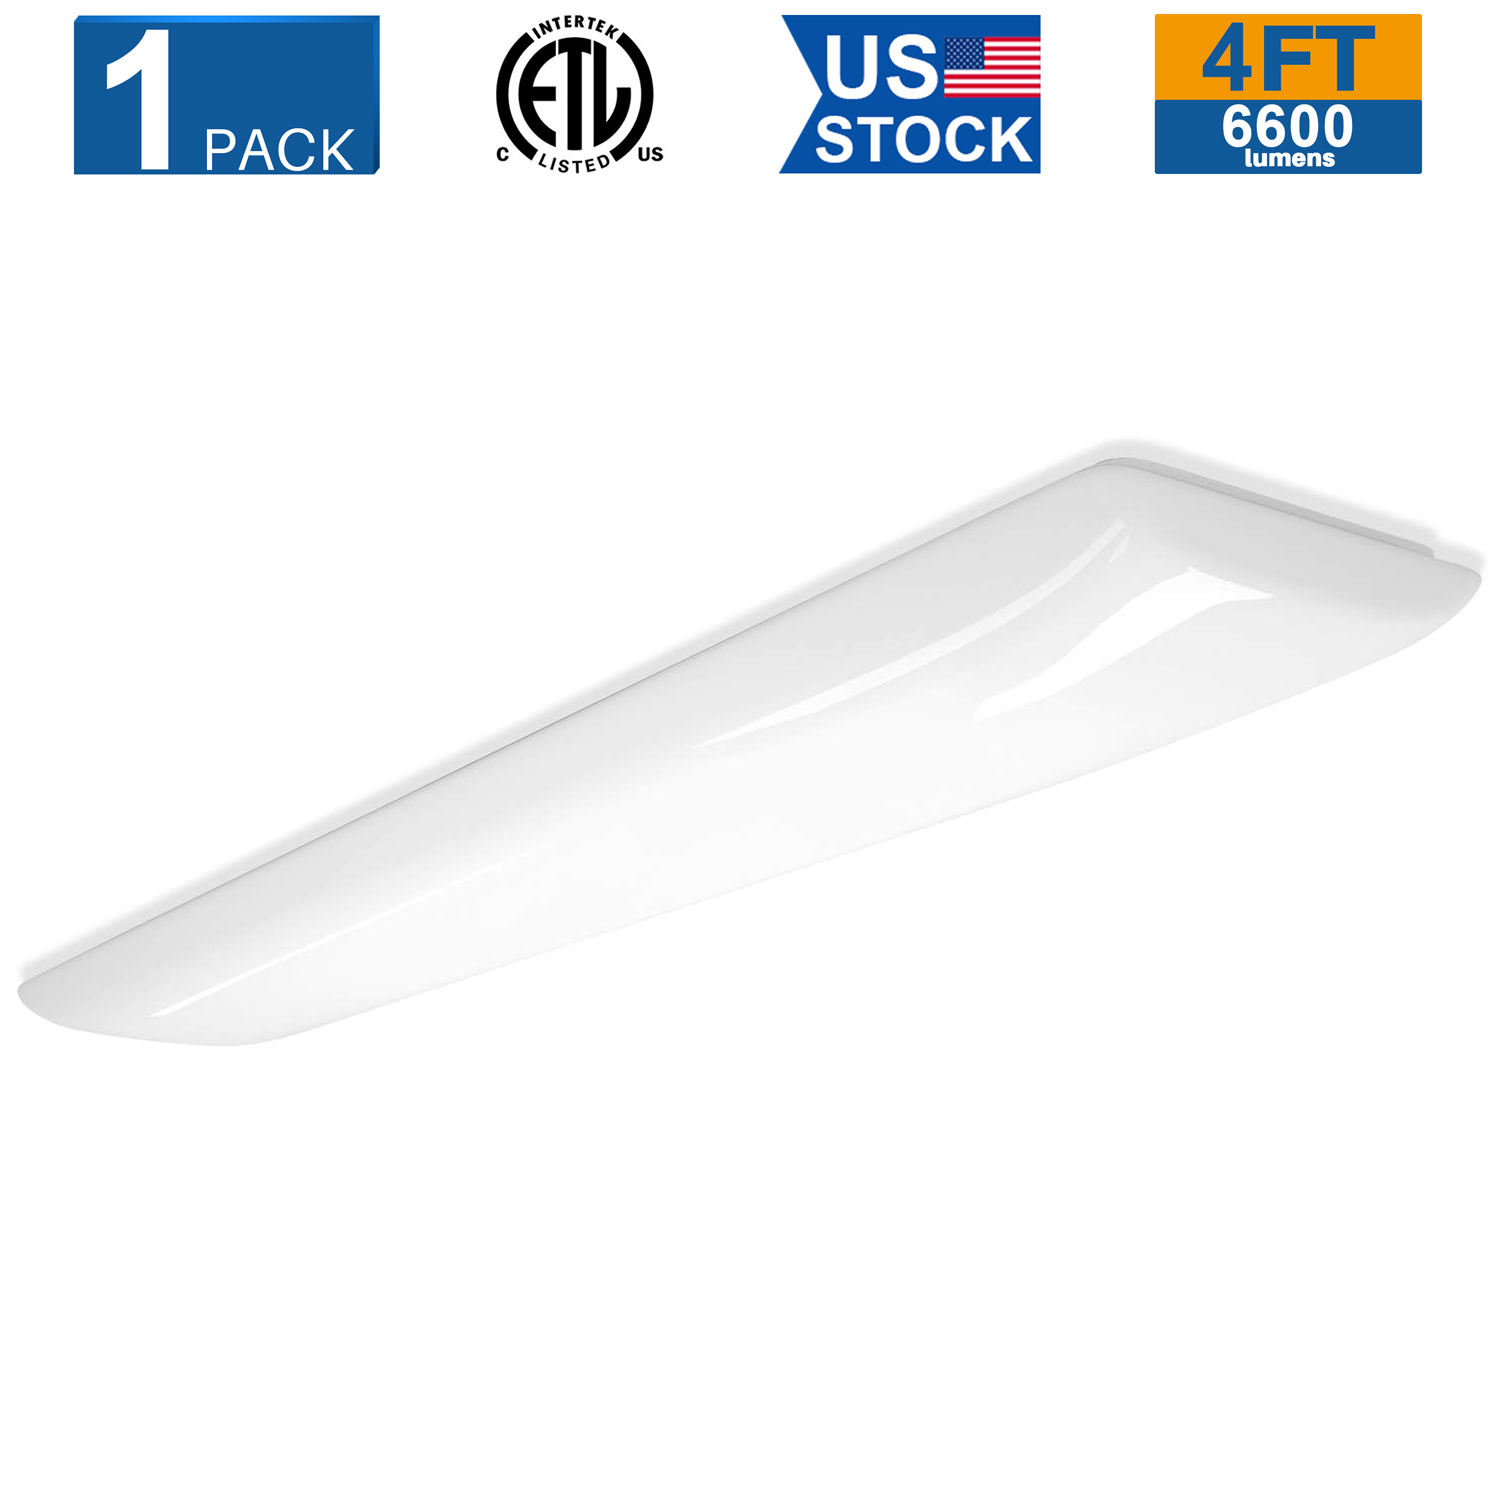 Details About 1pack 4 Foot Led Puff Ceiling Lights 60w Led Kitchen Light Fixture 6600lm 4000k